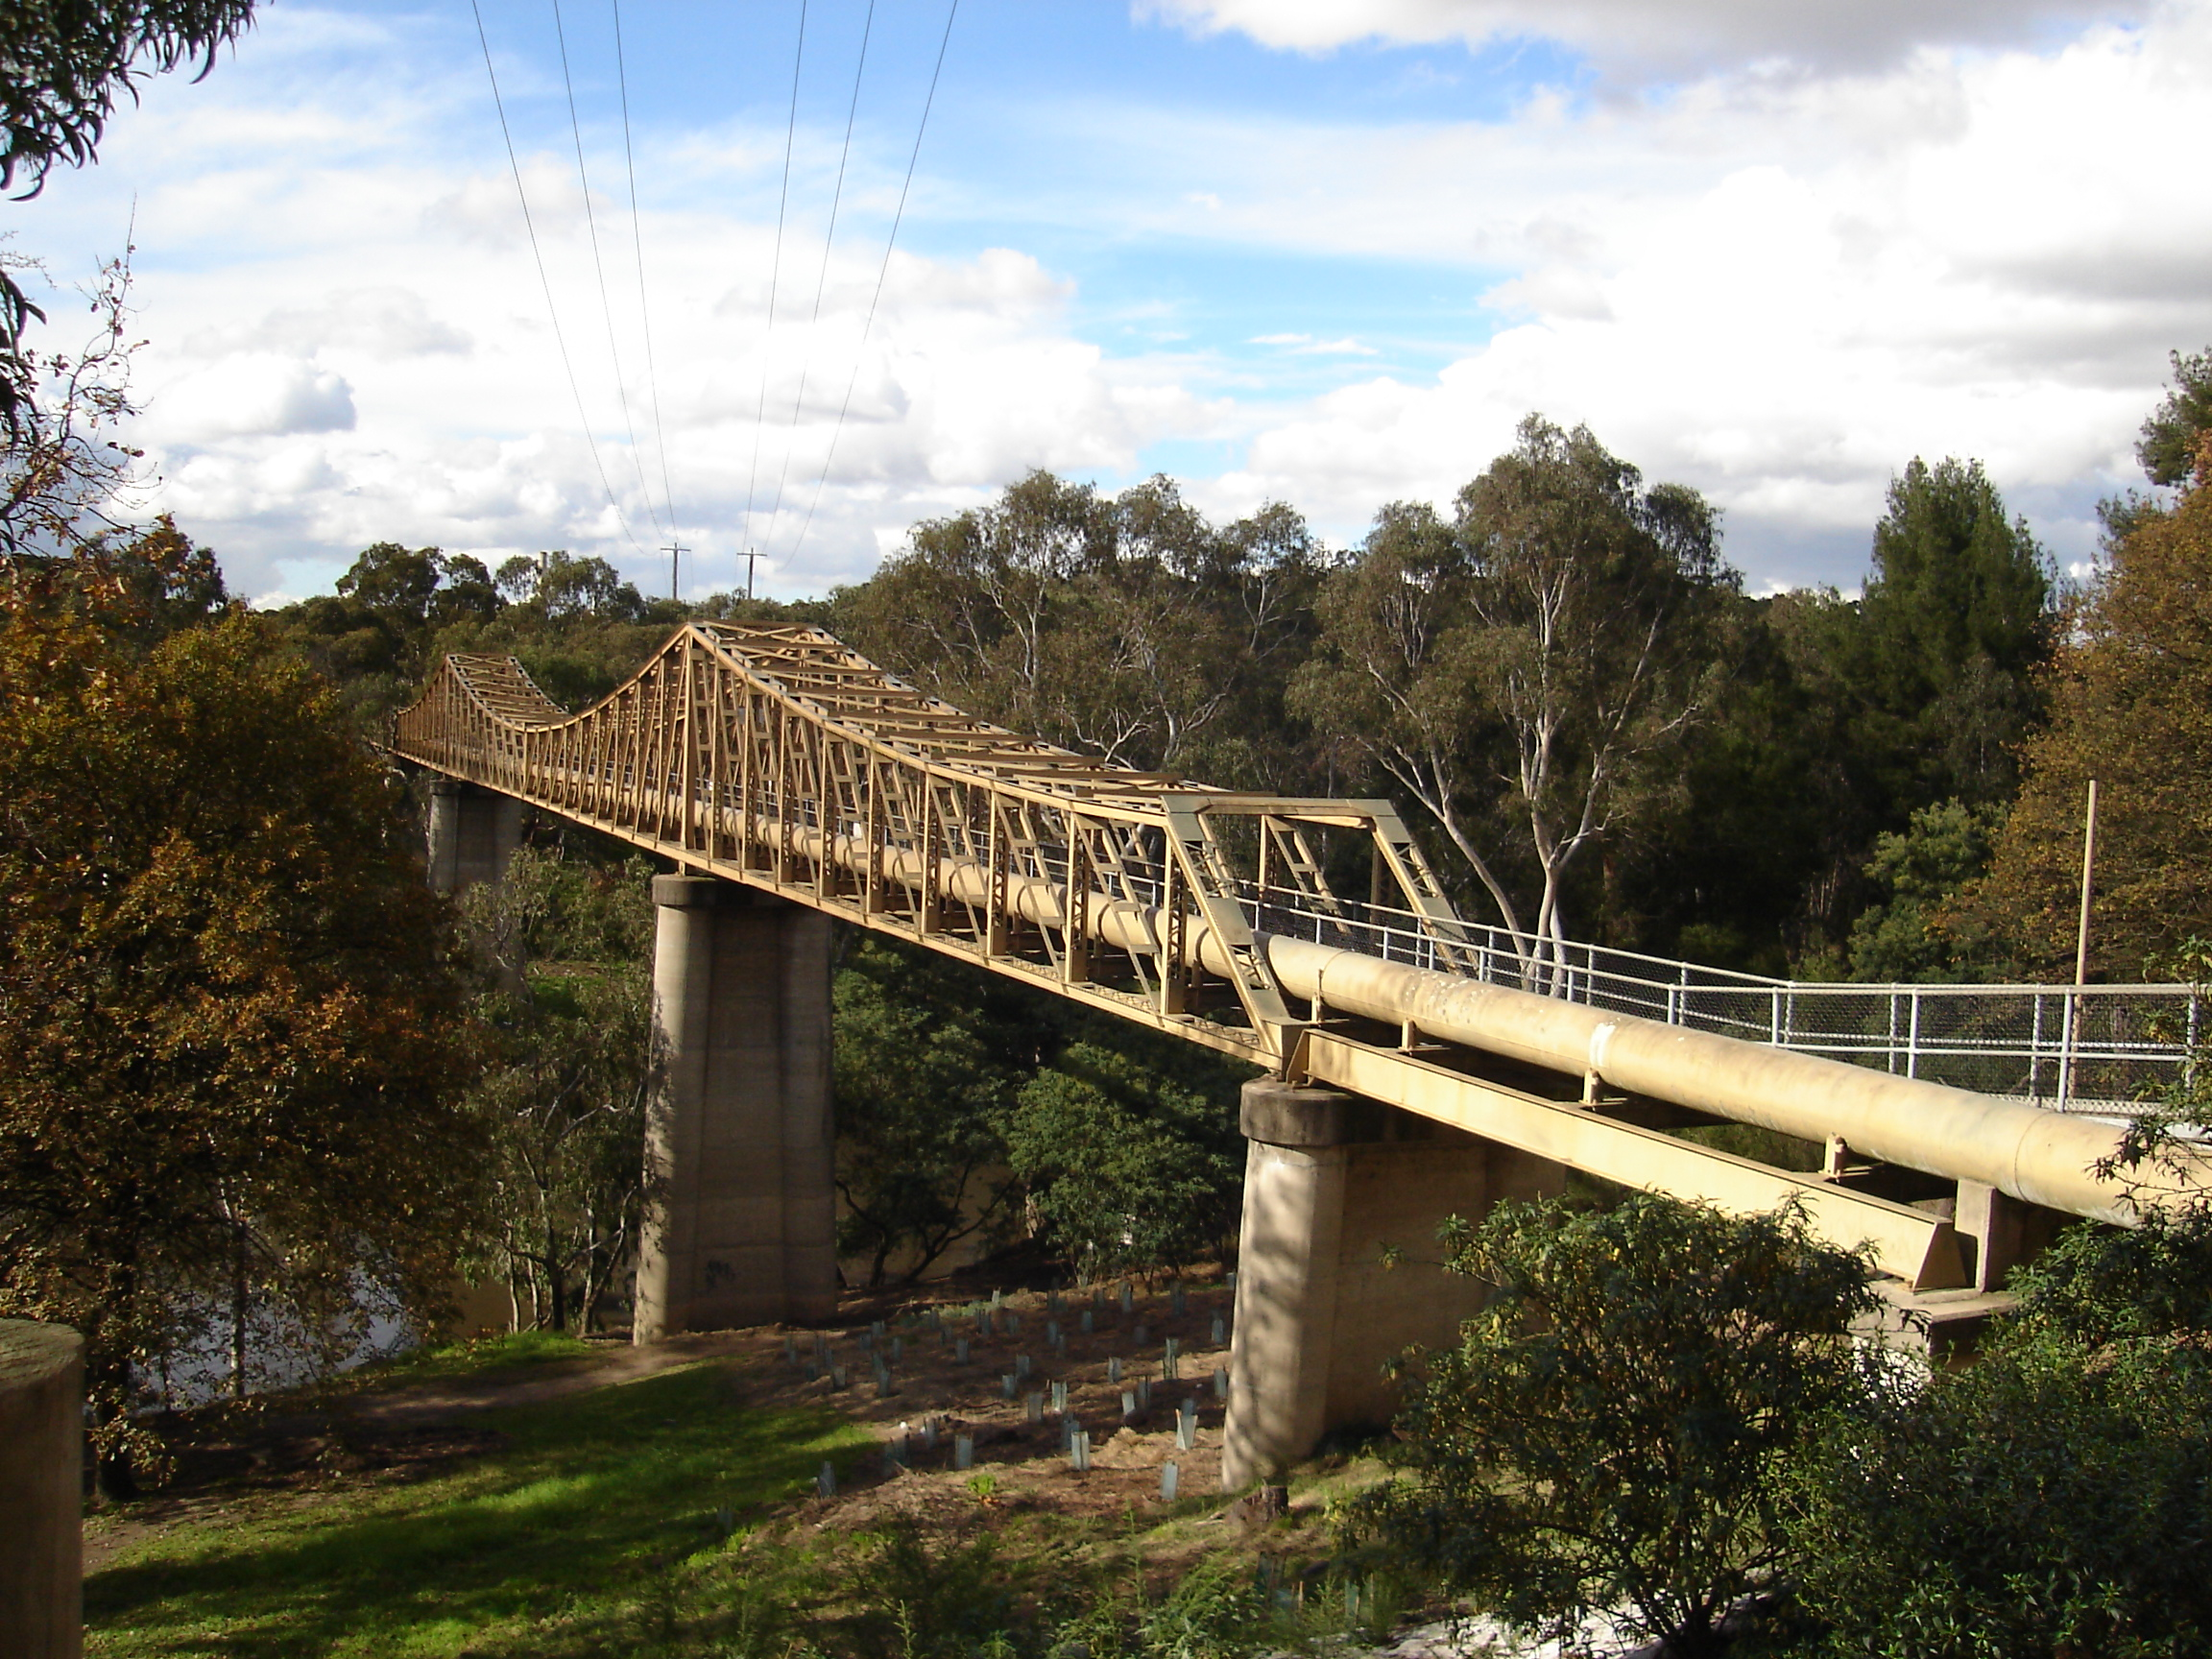 The Fairfield Pipe Bridge